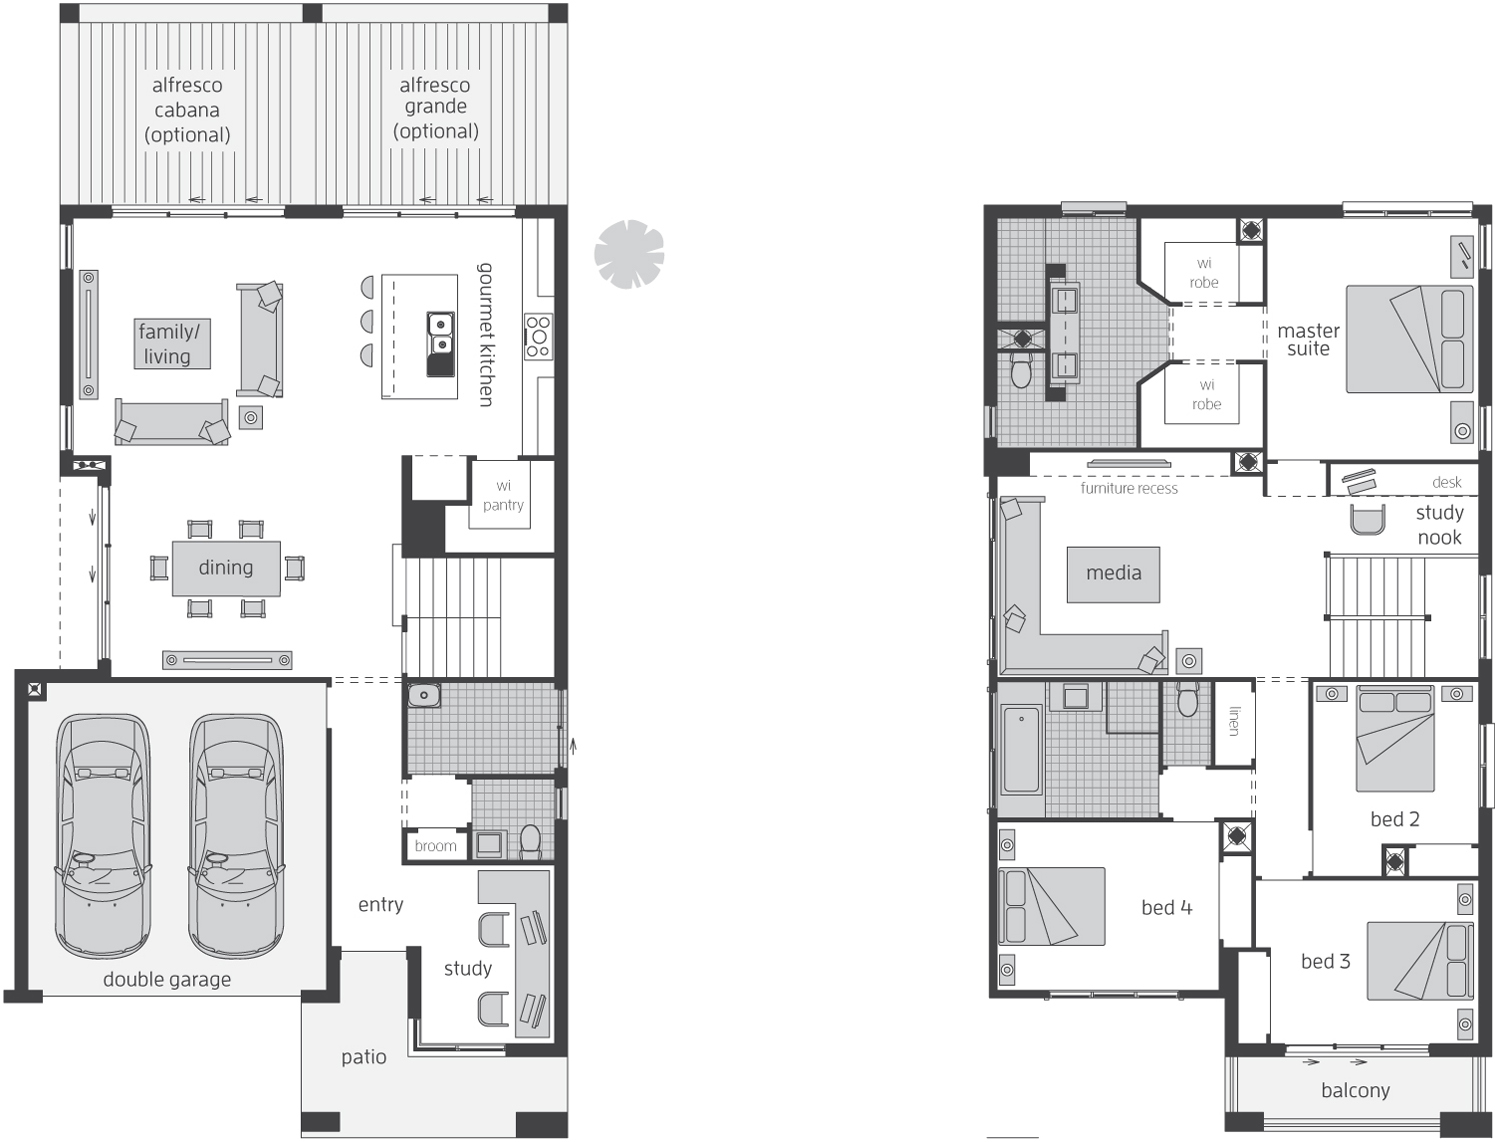 Floor Plan - Edenvale 34 Luxury Two Storey Home - McDonald Jones